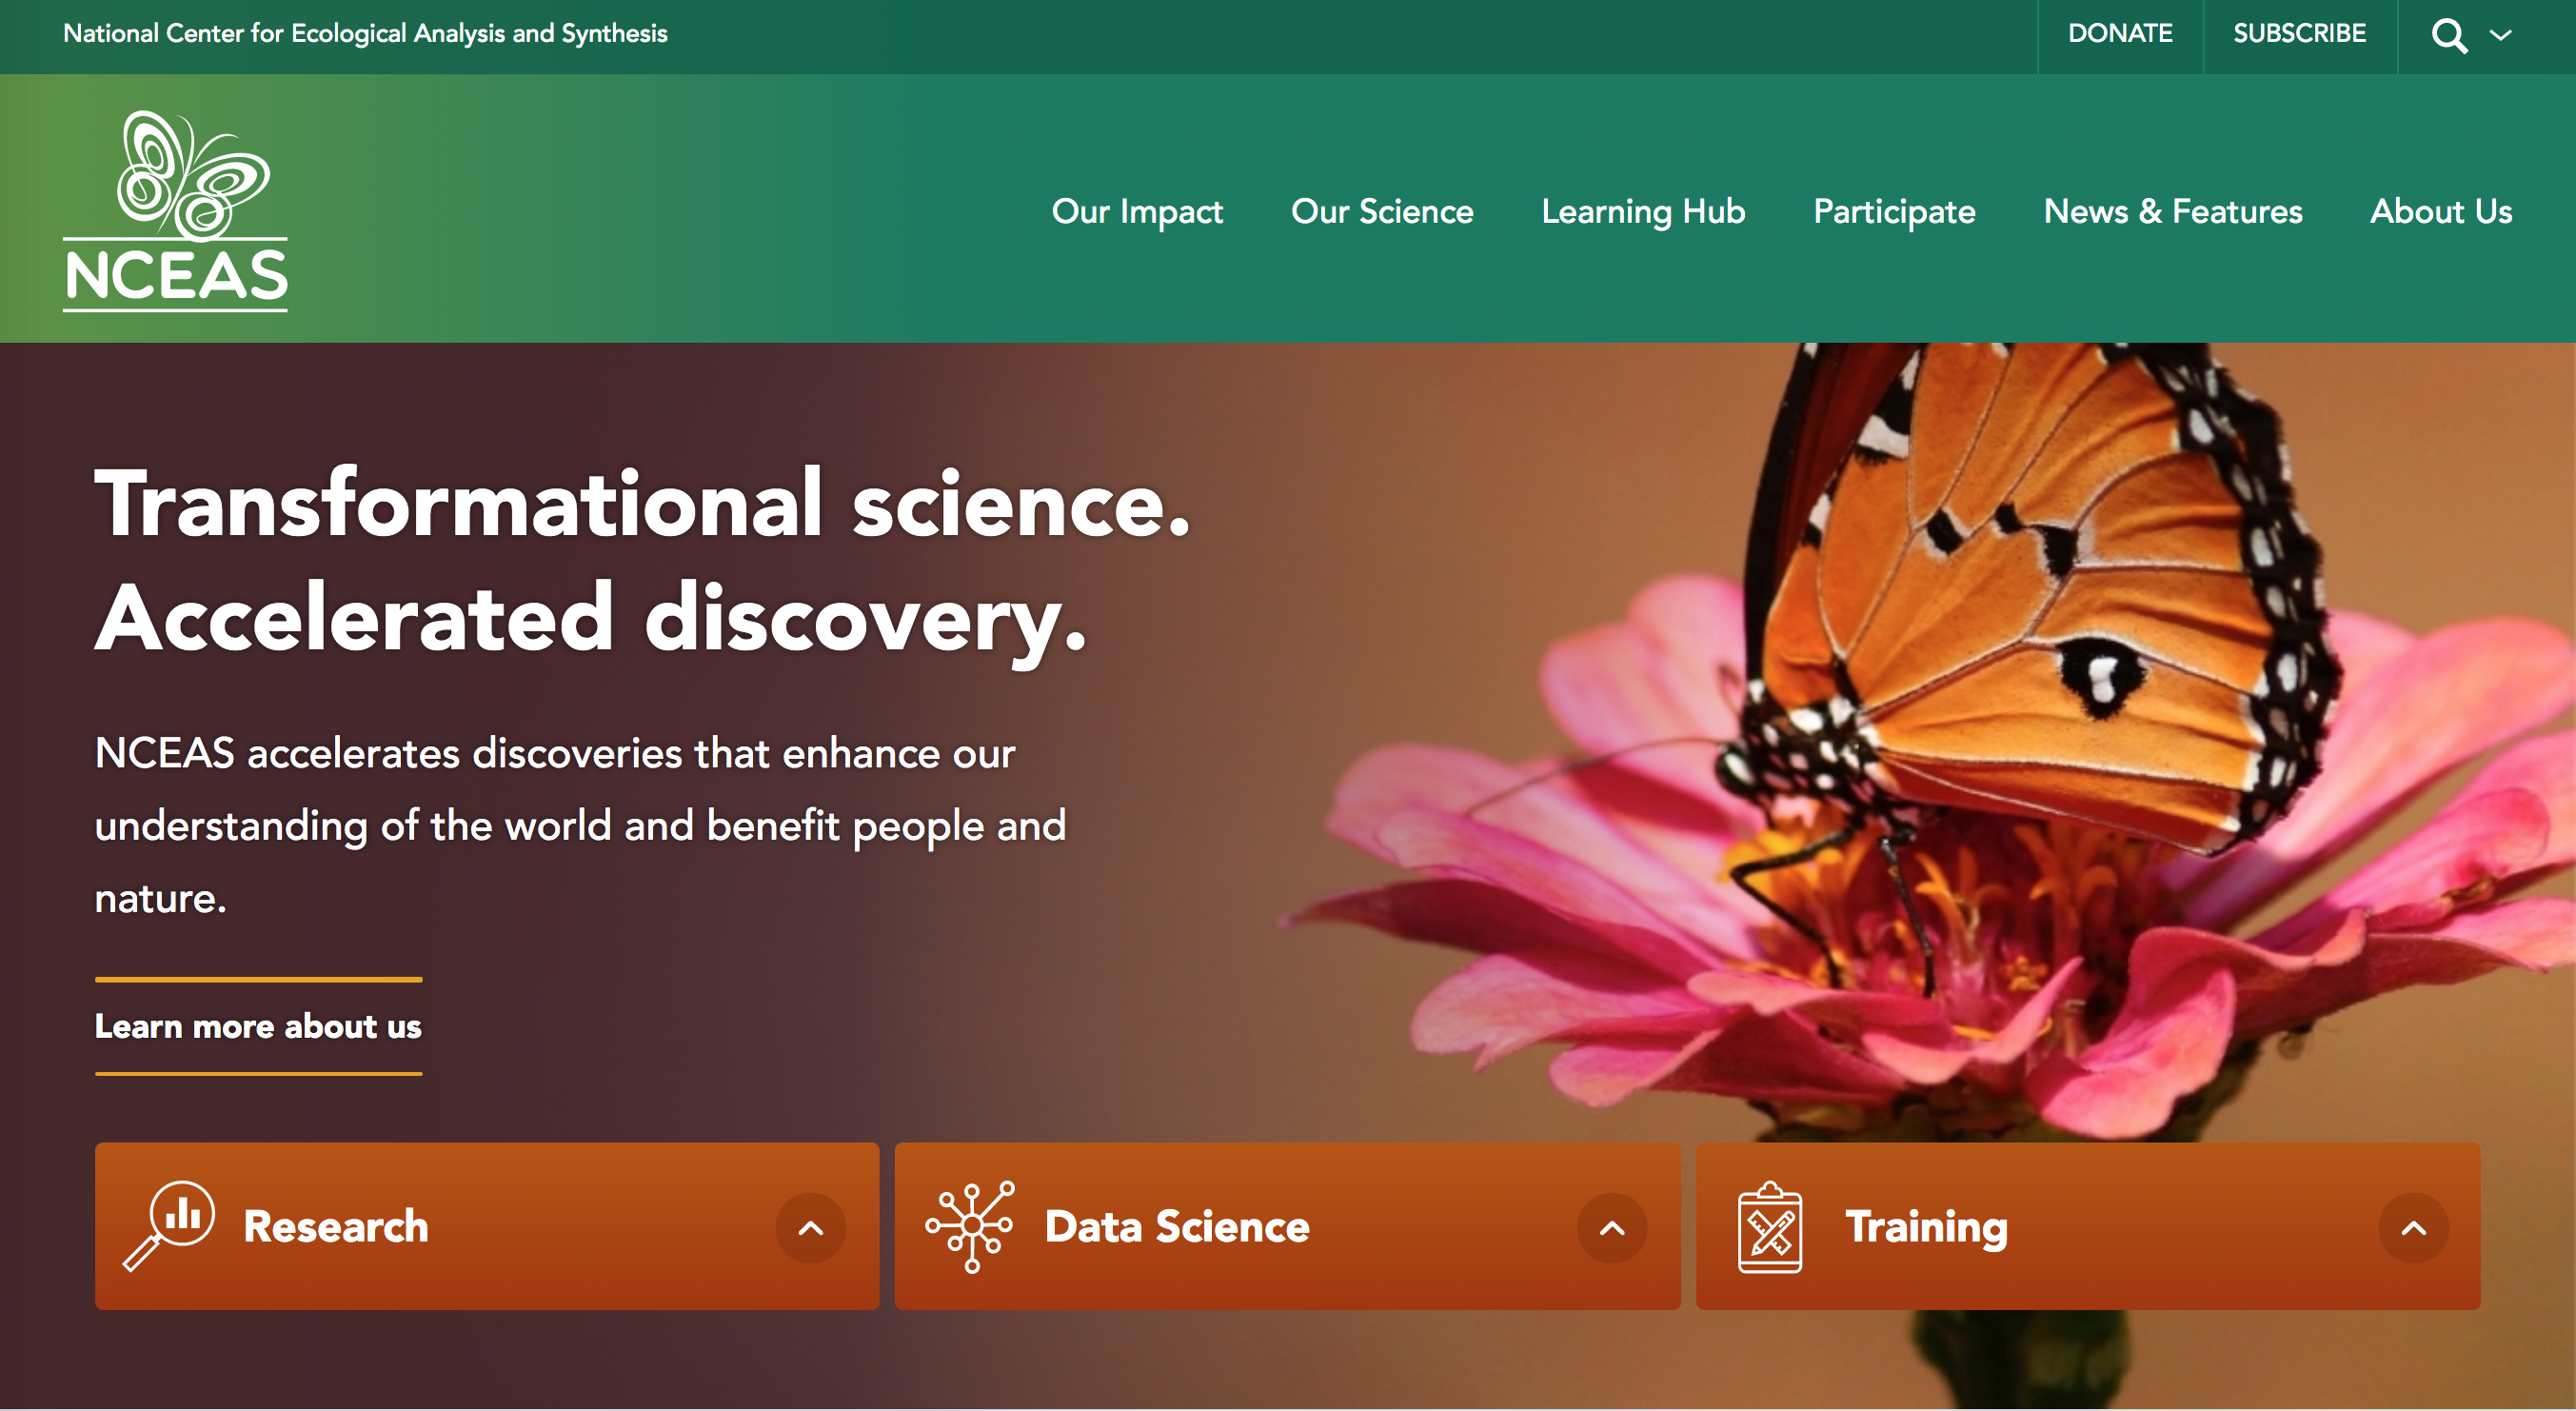 NCEAS home page